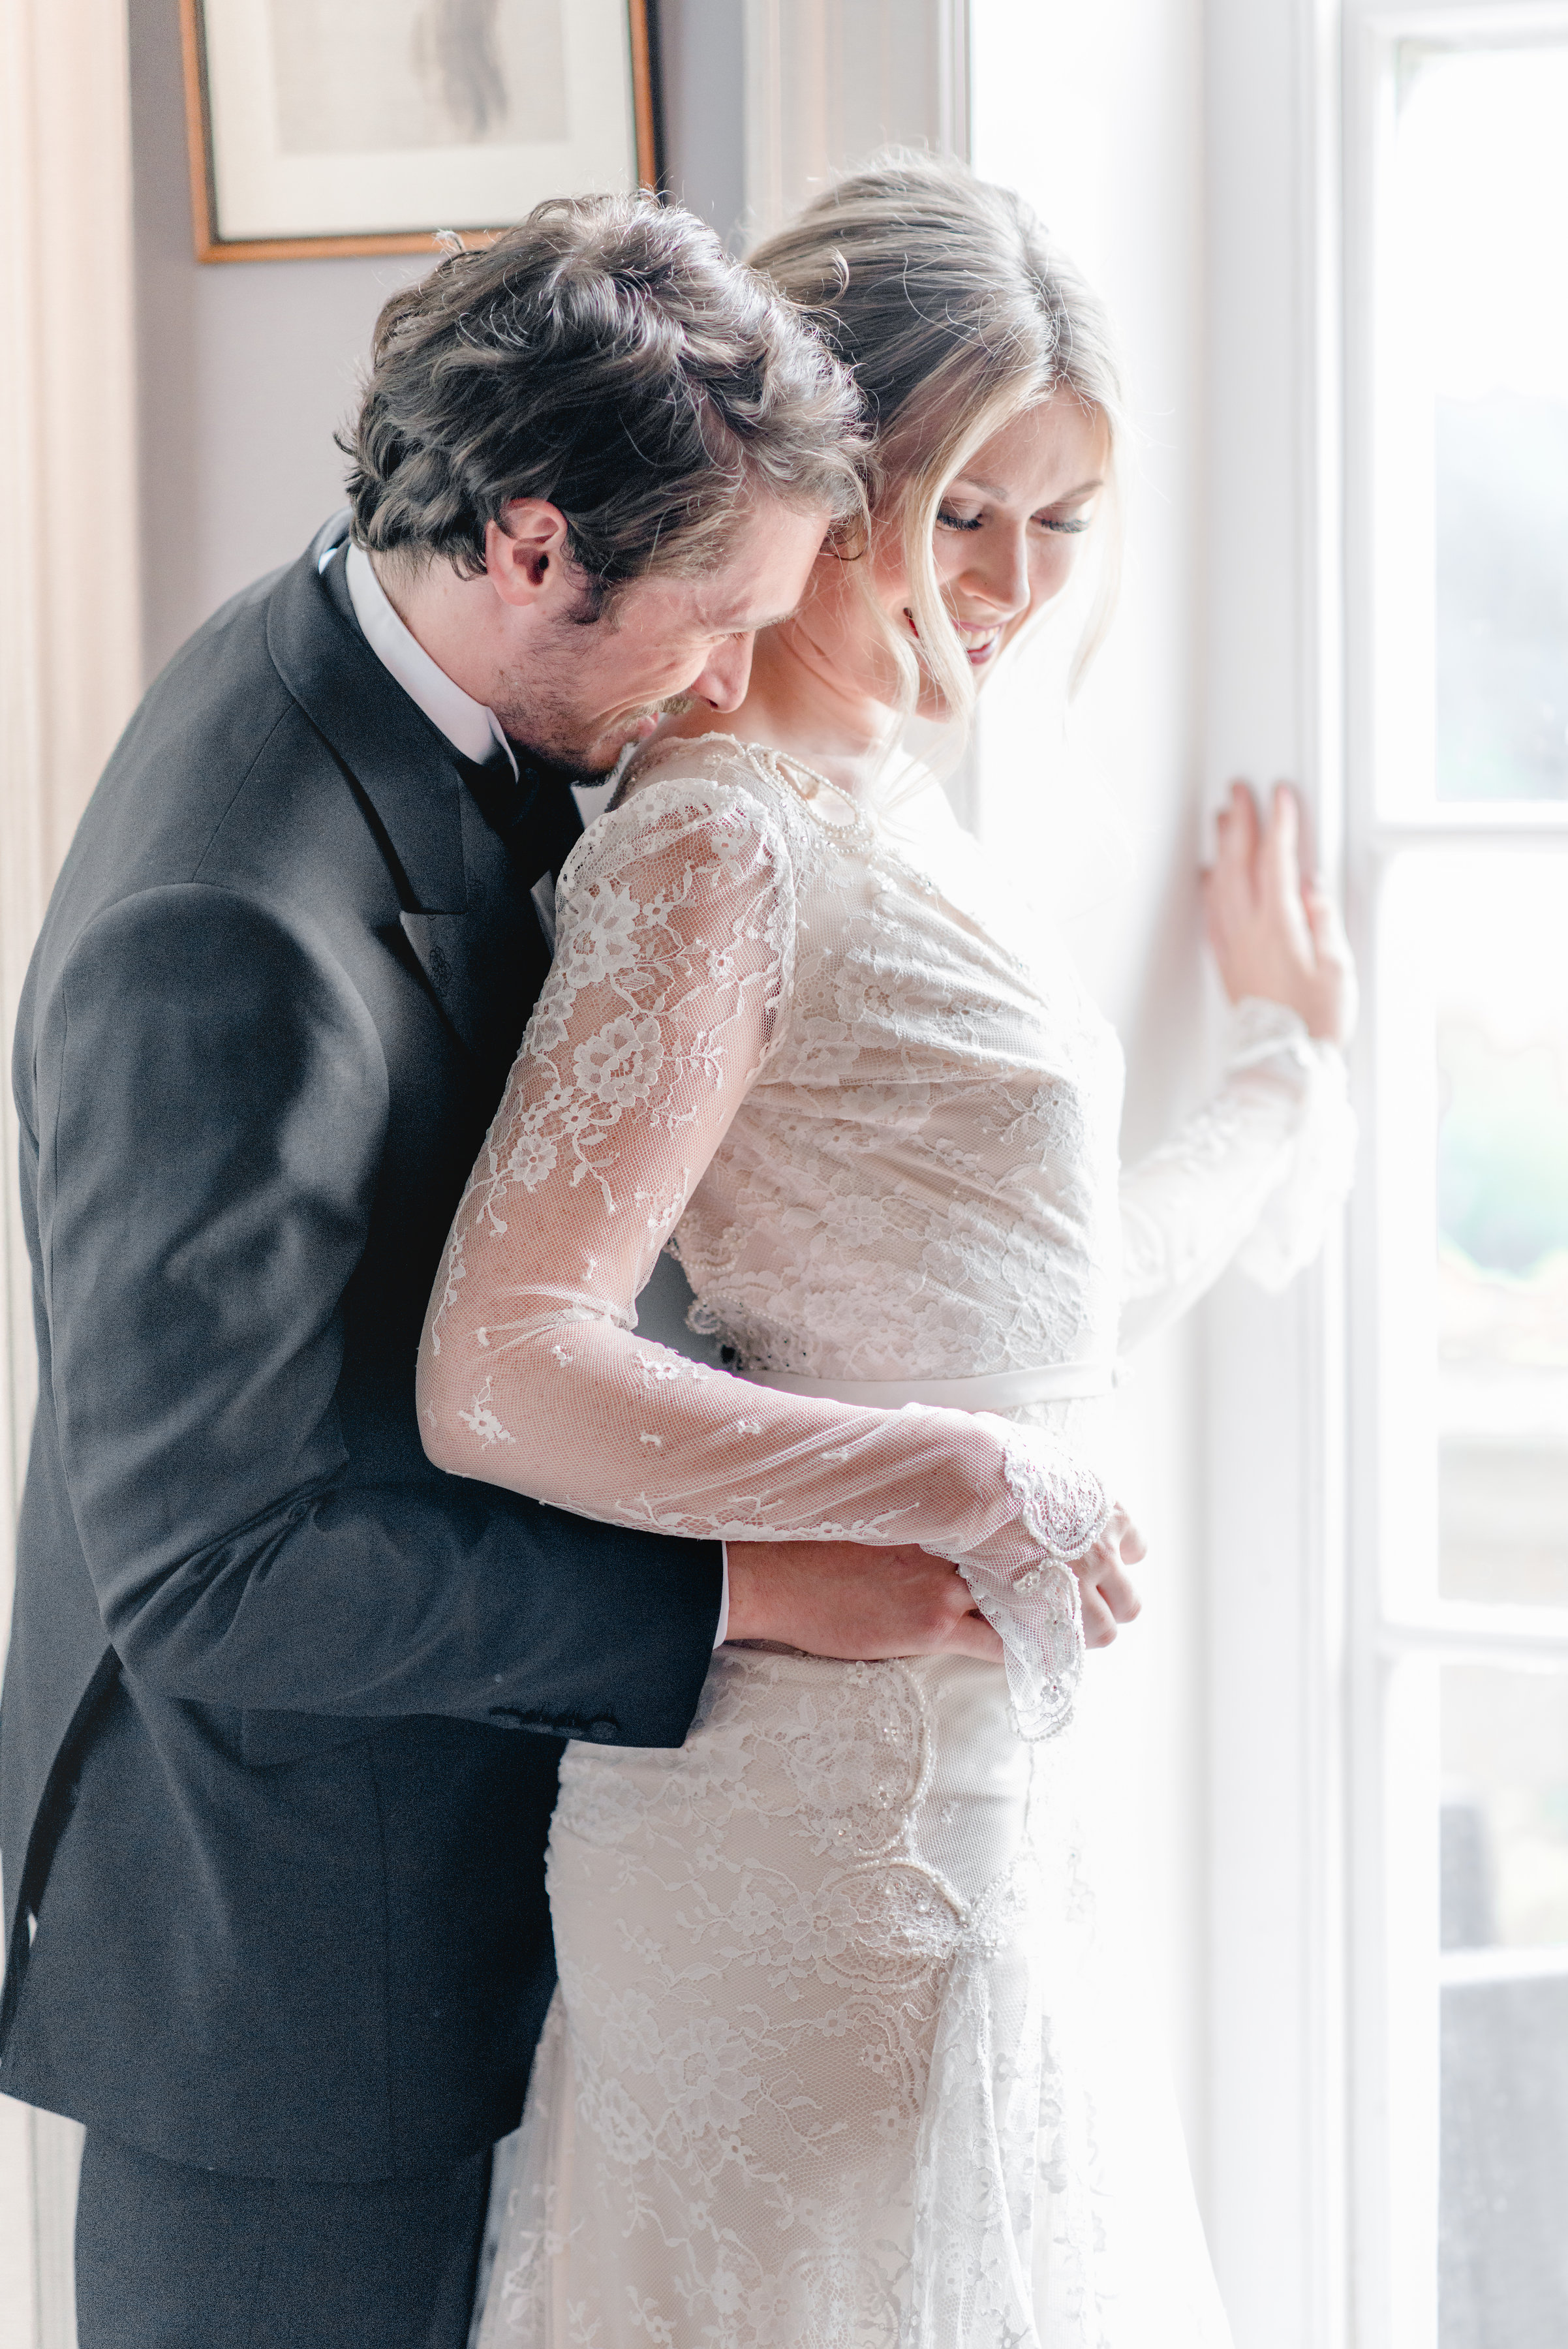 The Timeless Stylist-Elegant and Romantic Wedding Styling-Bride and Groom.jpg